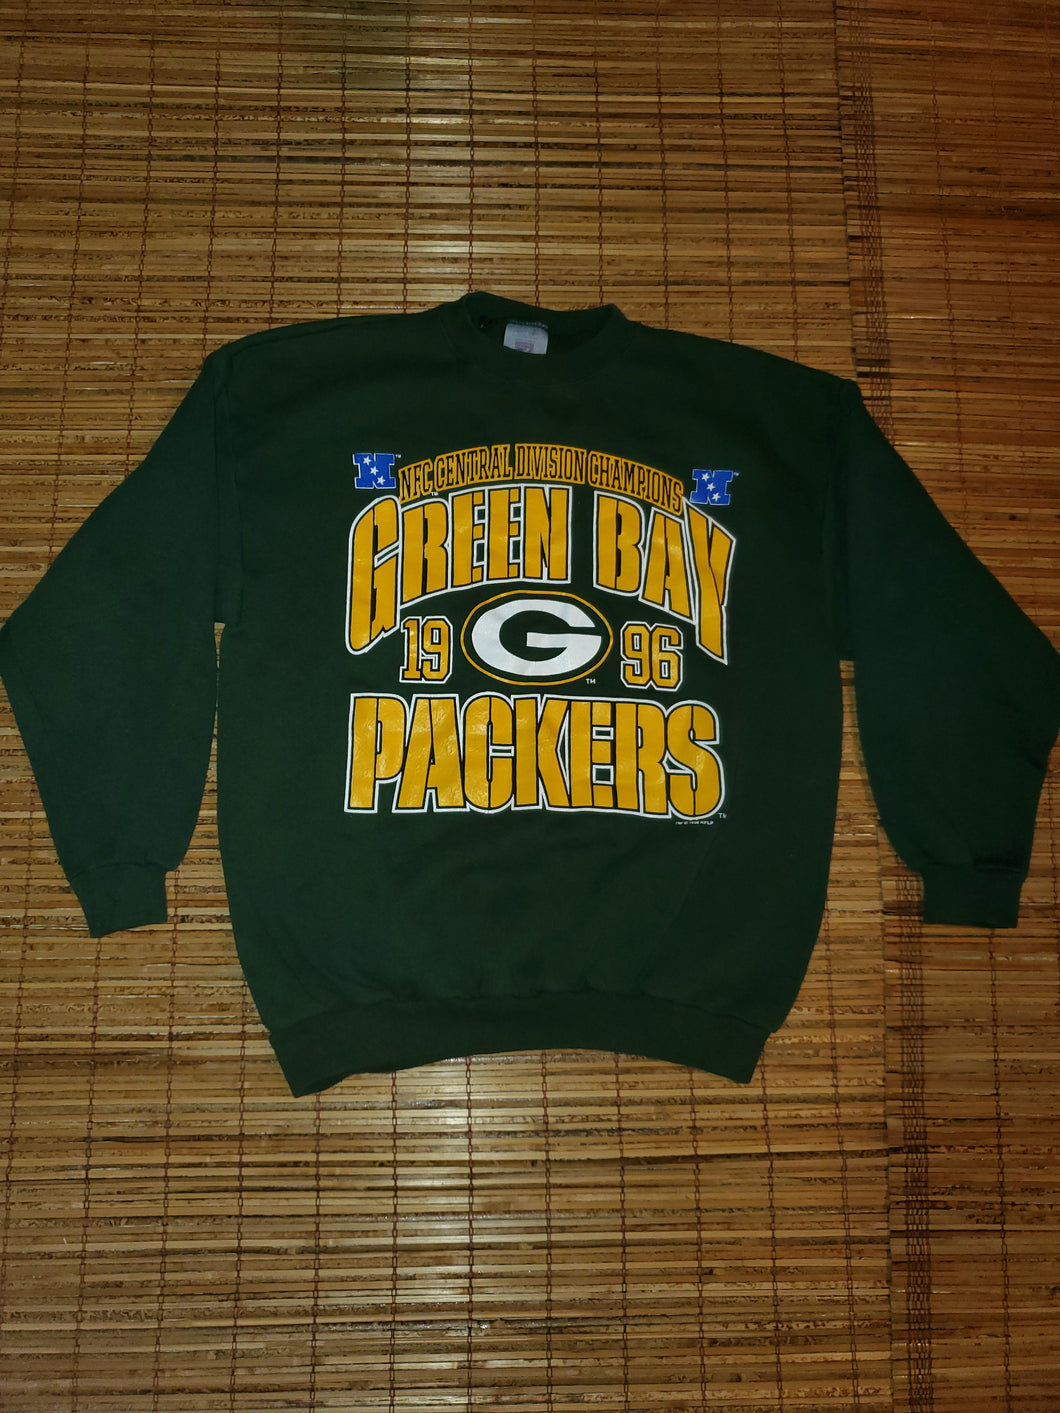 L - Vintage 1996 Packers NFC Division Champs Sweater